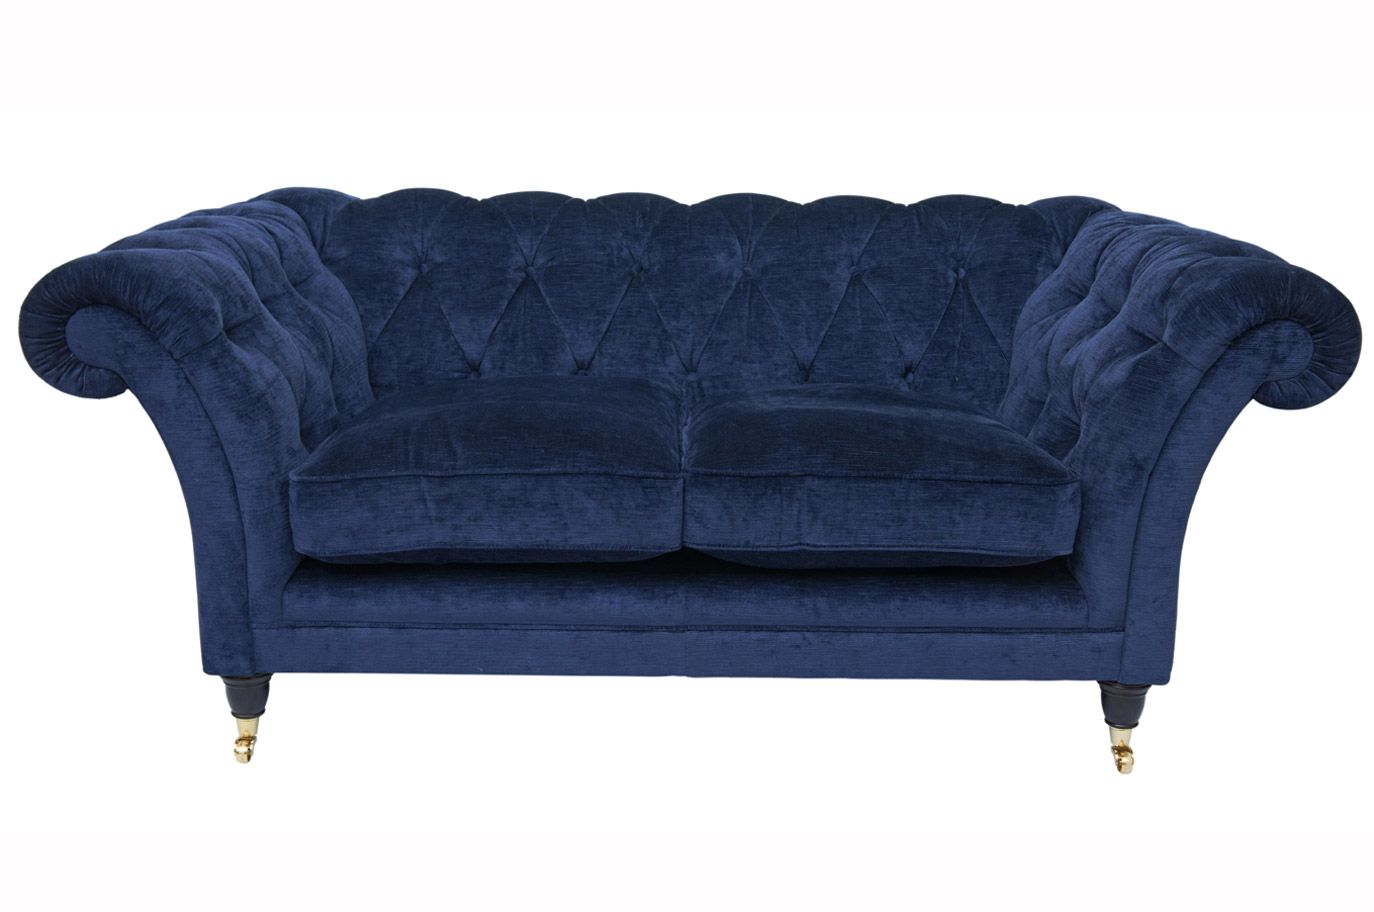 Sofas Laura Ashley Furniture Woodmark Sleeper Sofa Hudson In Midnight Blue From For The Home